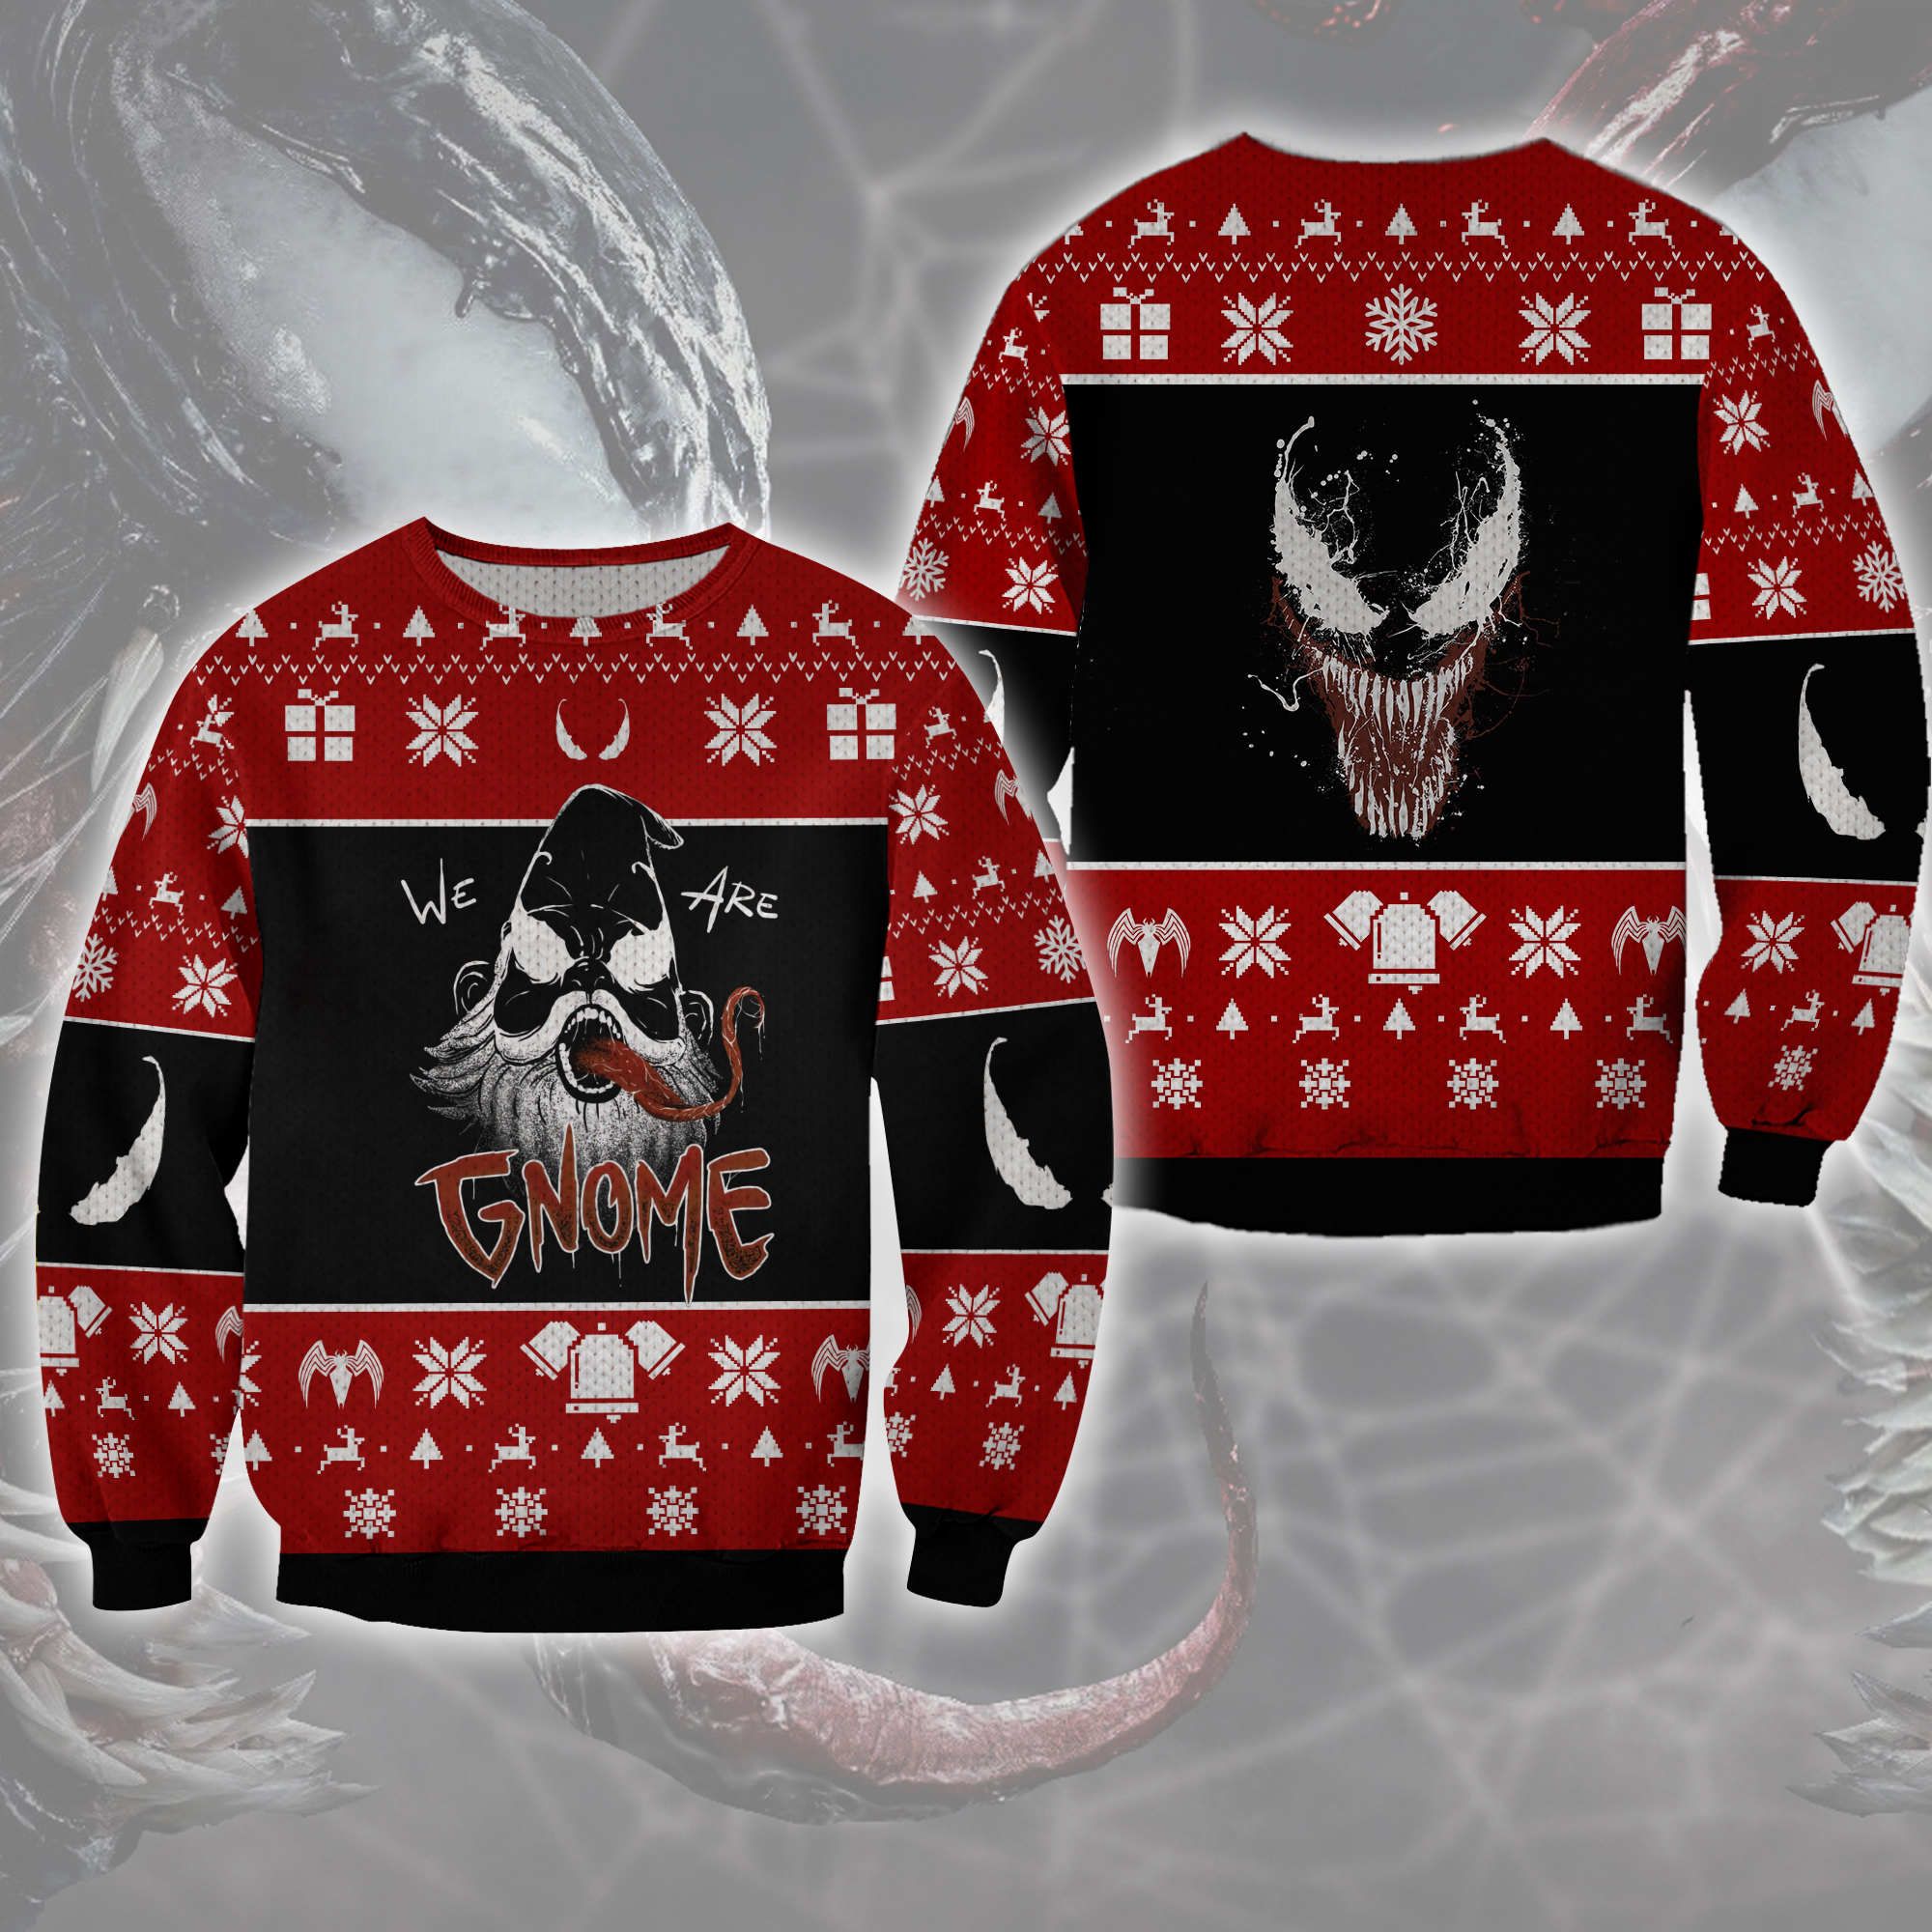 We are Venom Gnome Woolen Ugly Sweater Christmas